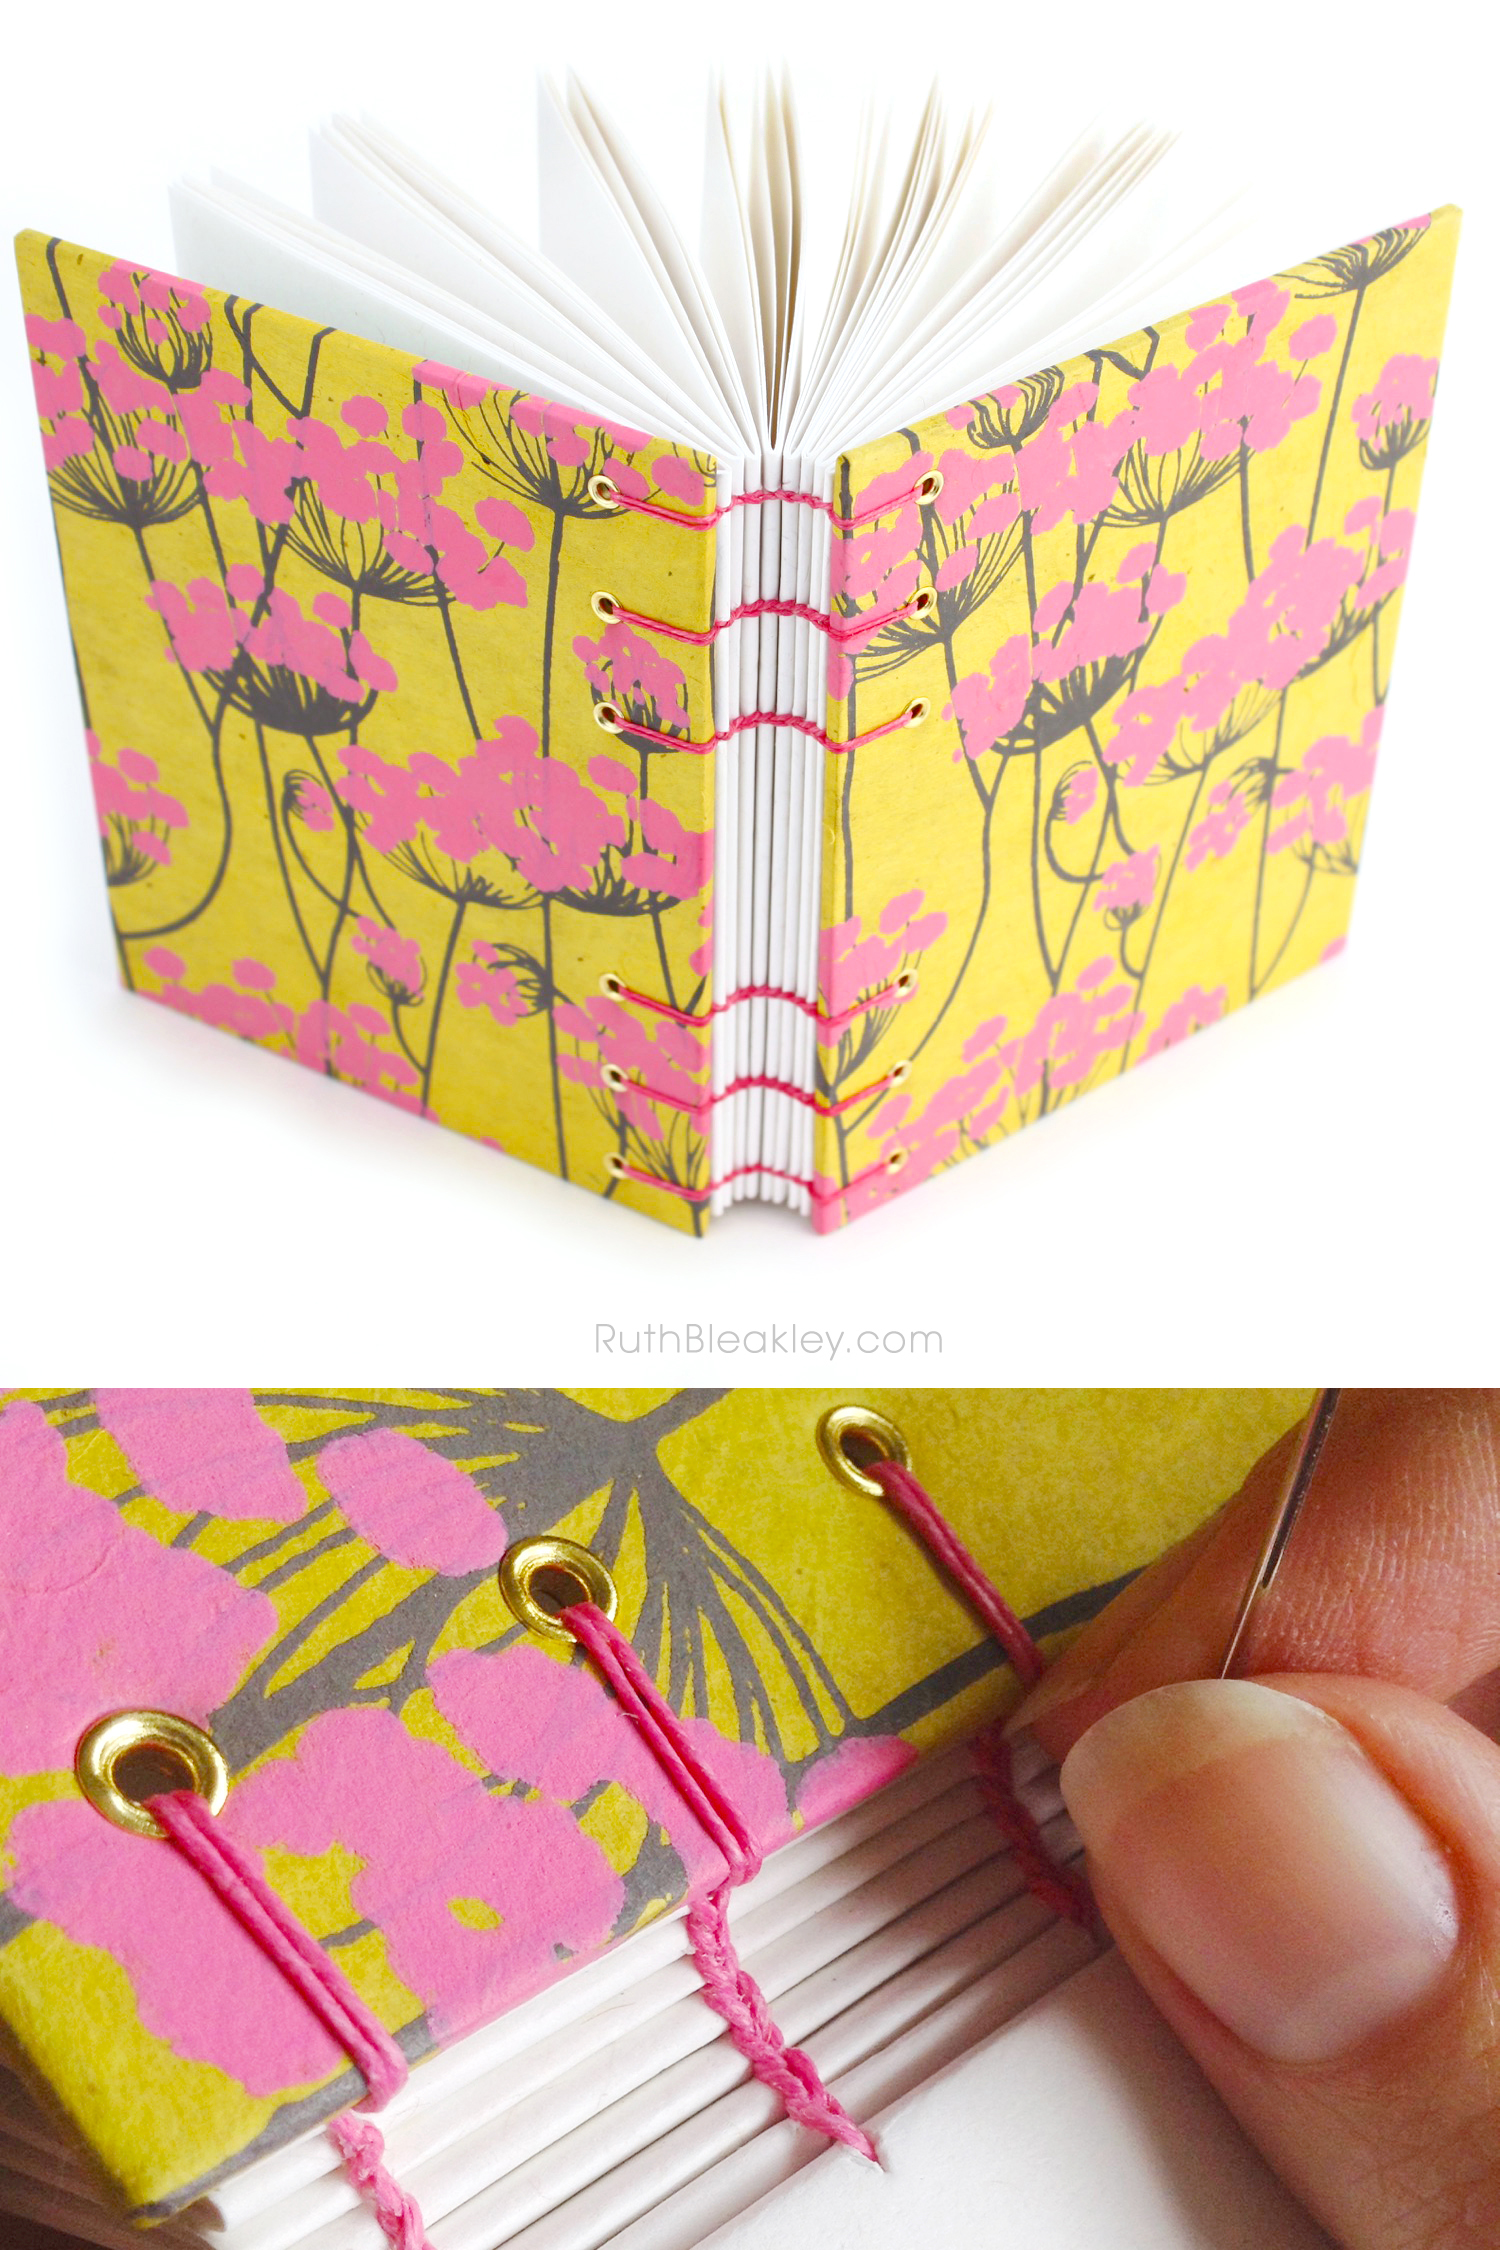 Ruth Bleakley makes handmade blank journals like this pink and yellow one with handmade paper from around the world